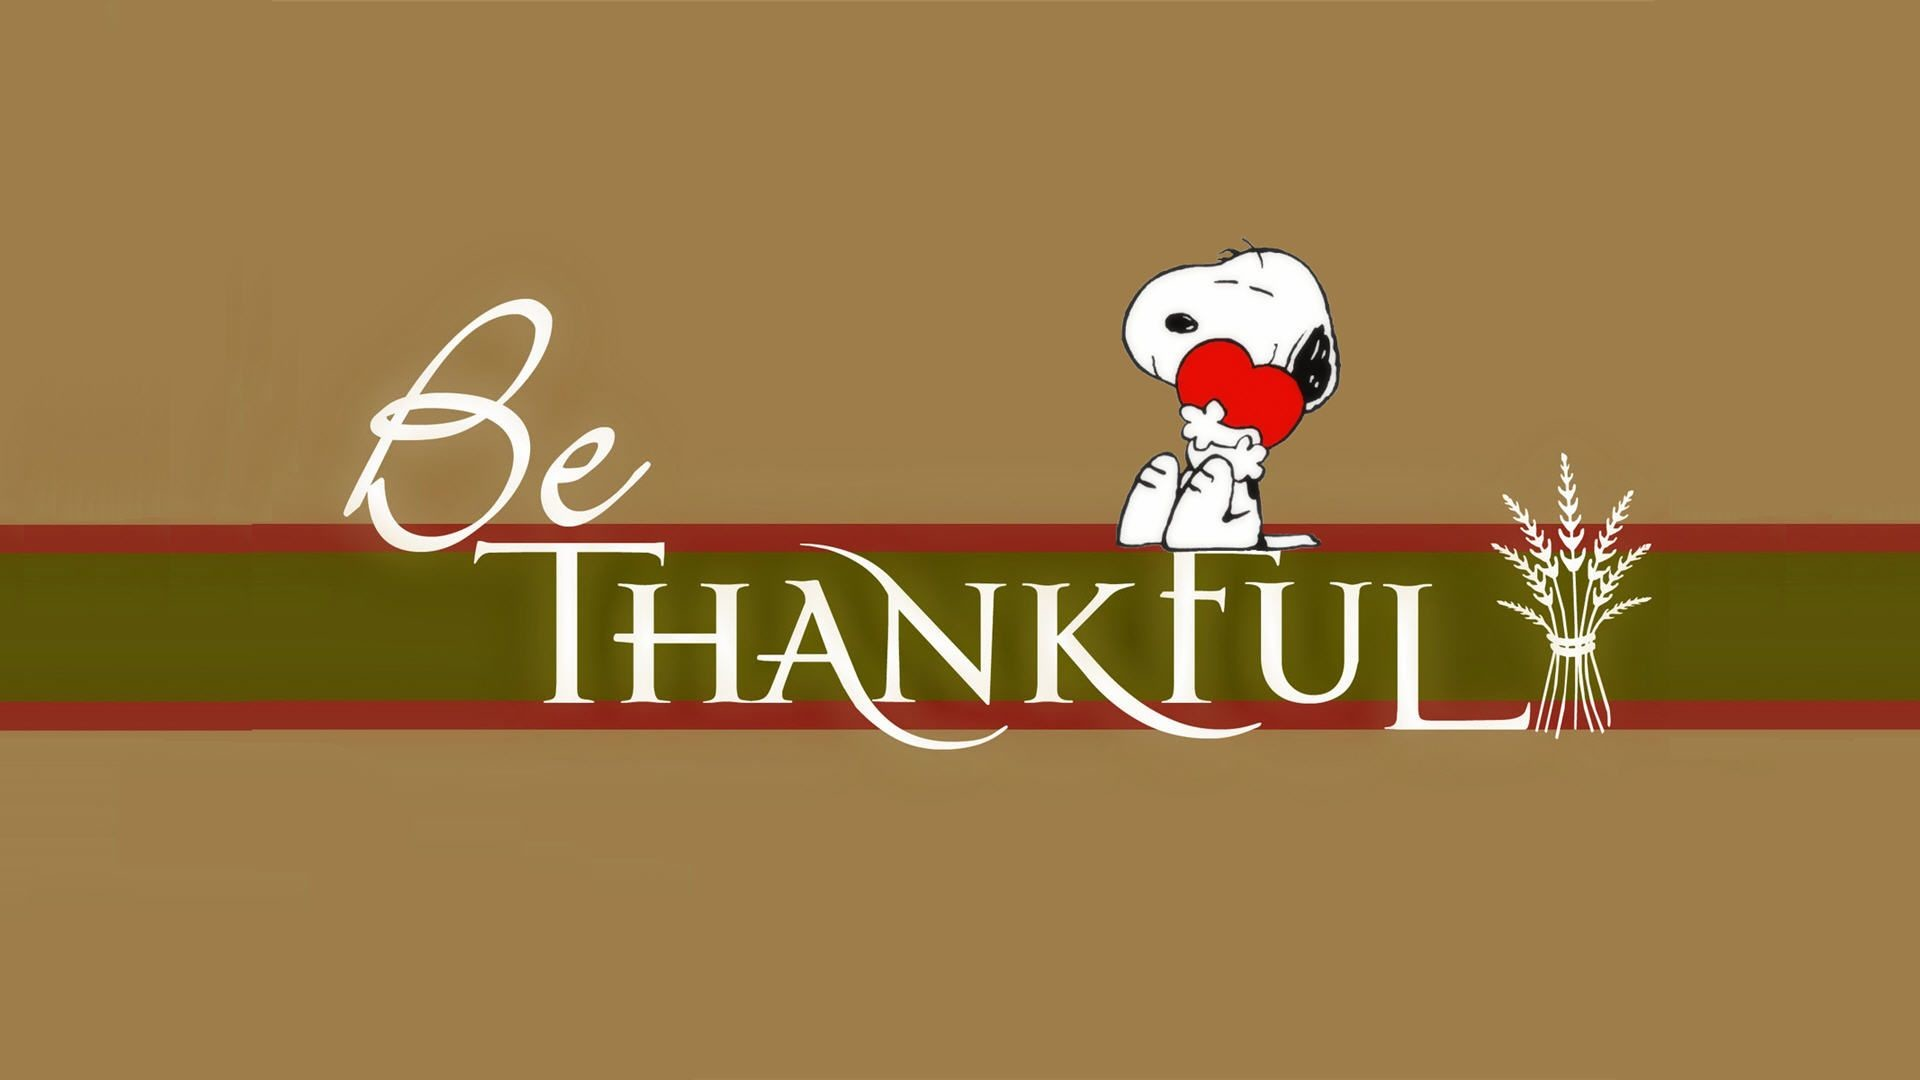 PC, Laptop Snoopy Wallpapers, LifeWallpapers Graphics